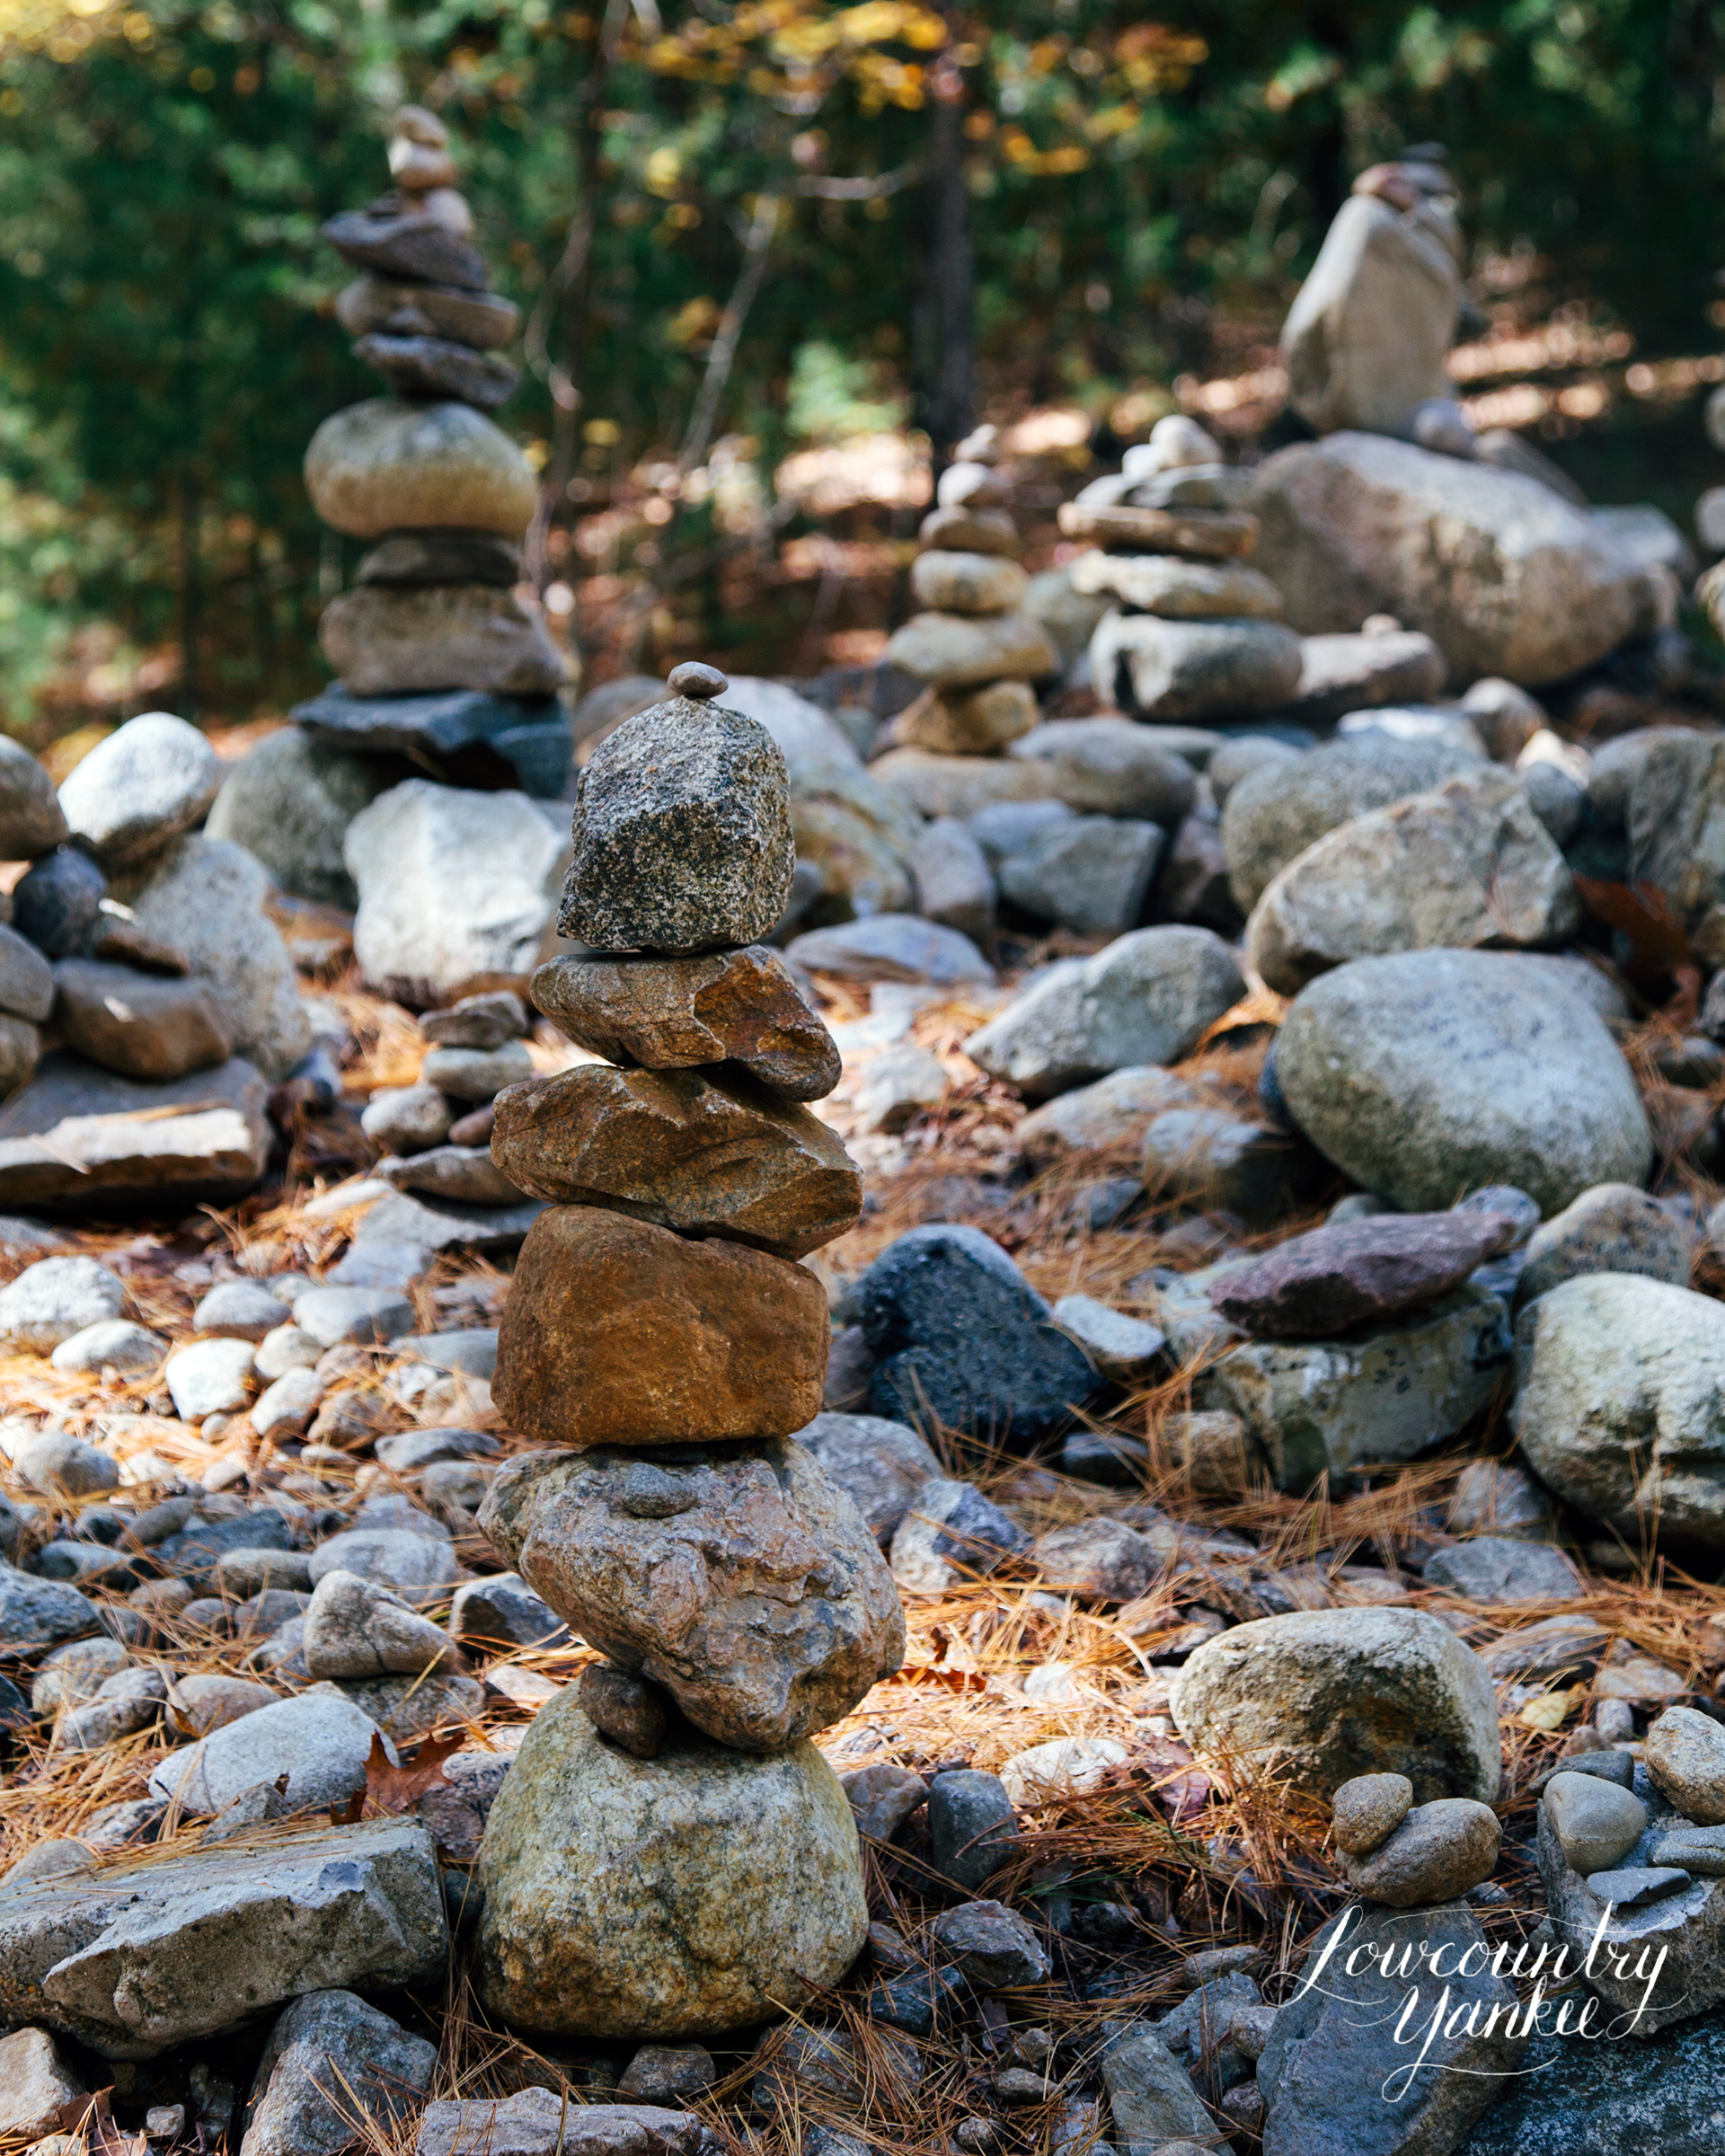 A rock monument started by Bronson Alcott to mark the place where Thoreau's cabin once stood.